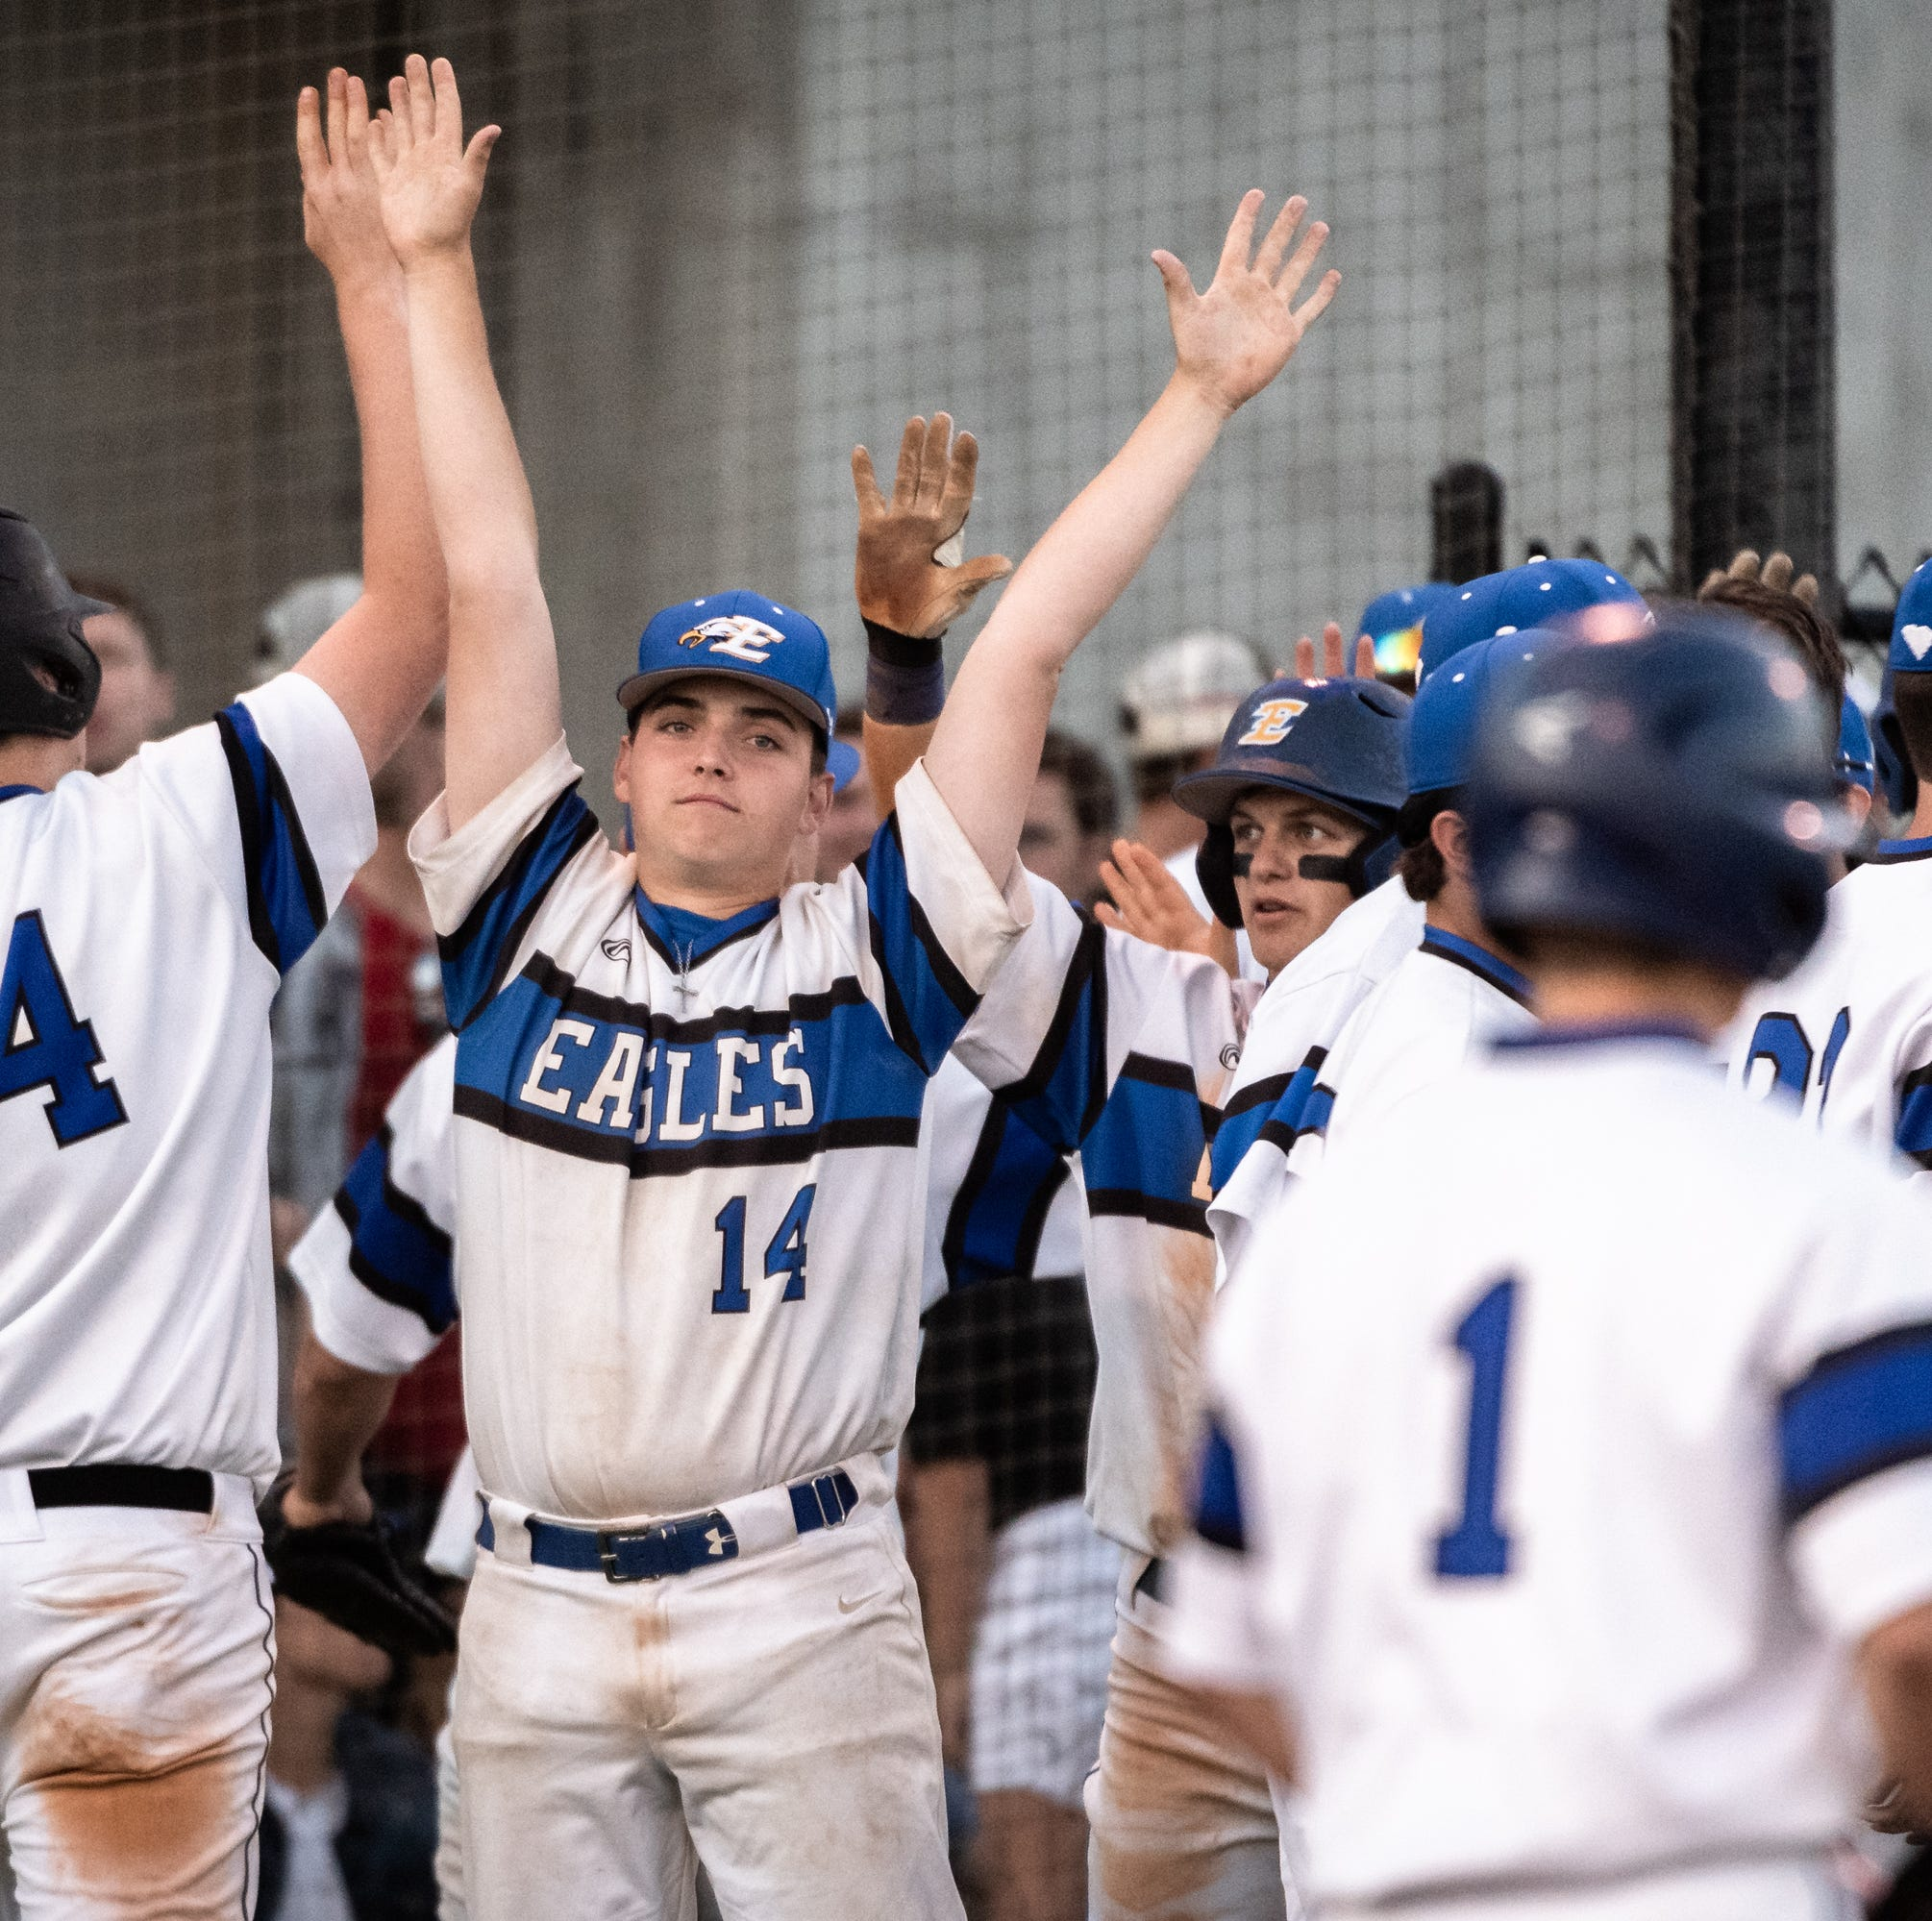 Eastside baseball defeats Midland Valley to inch closer to state championship